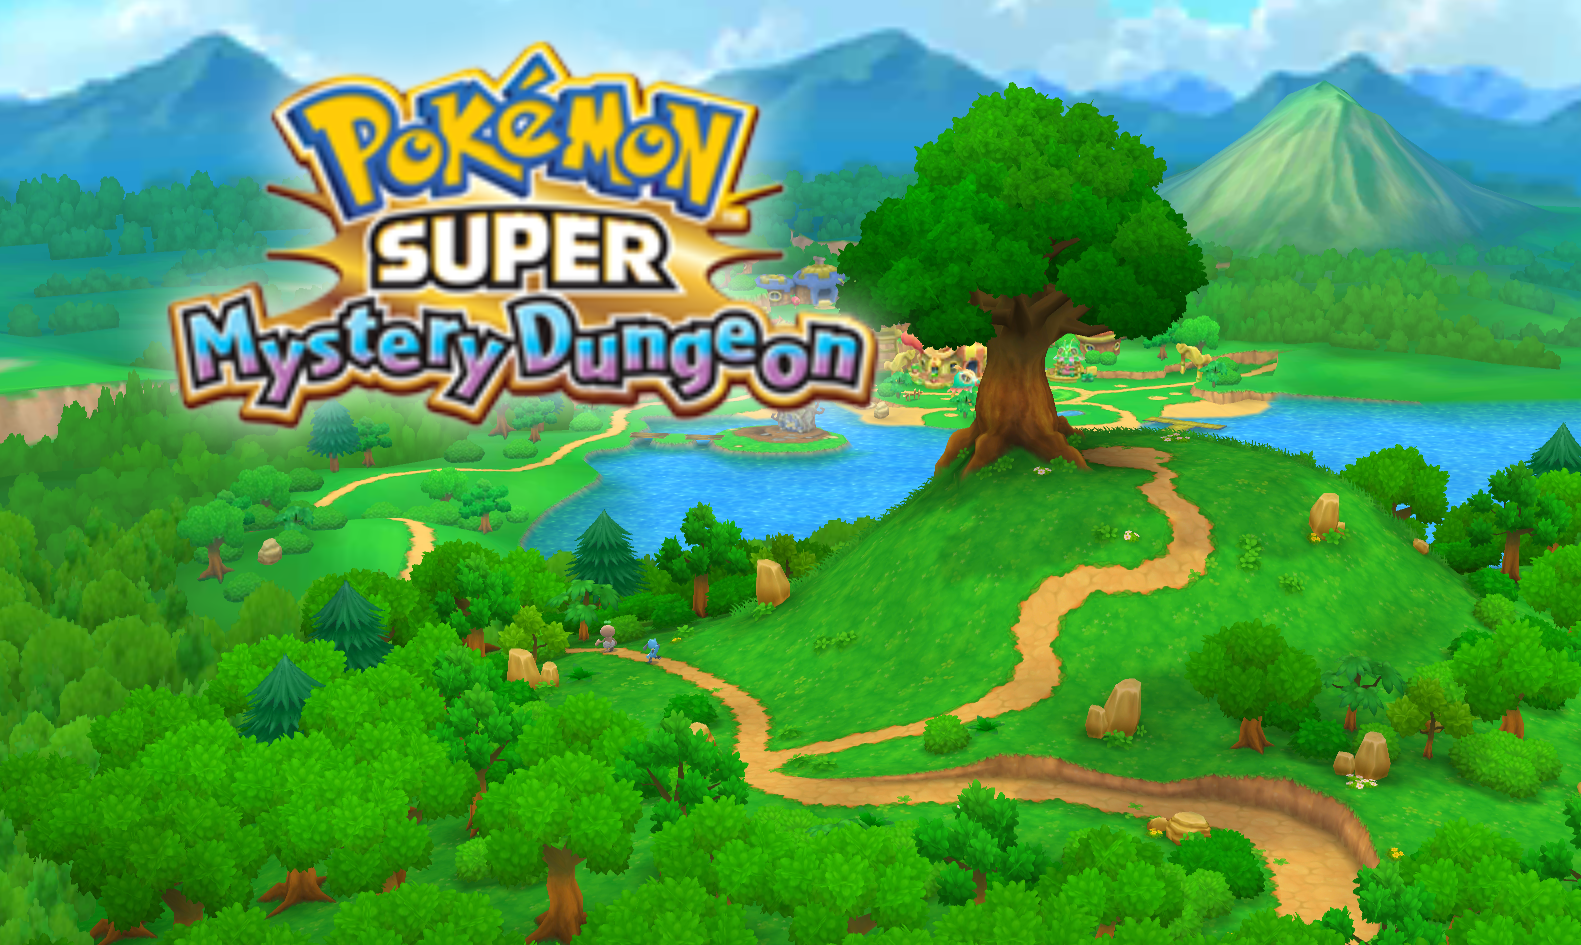 Citra 3DS now works with Pokémon Mystery Dungeon